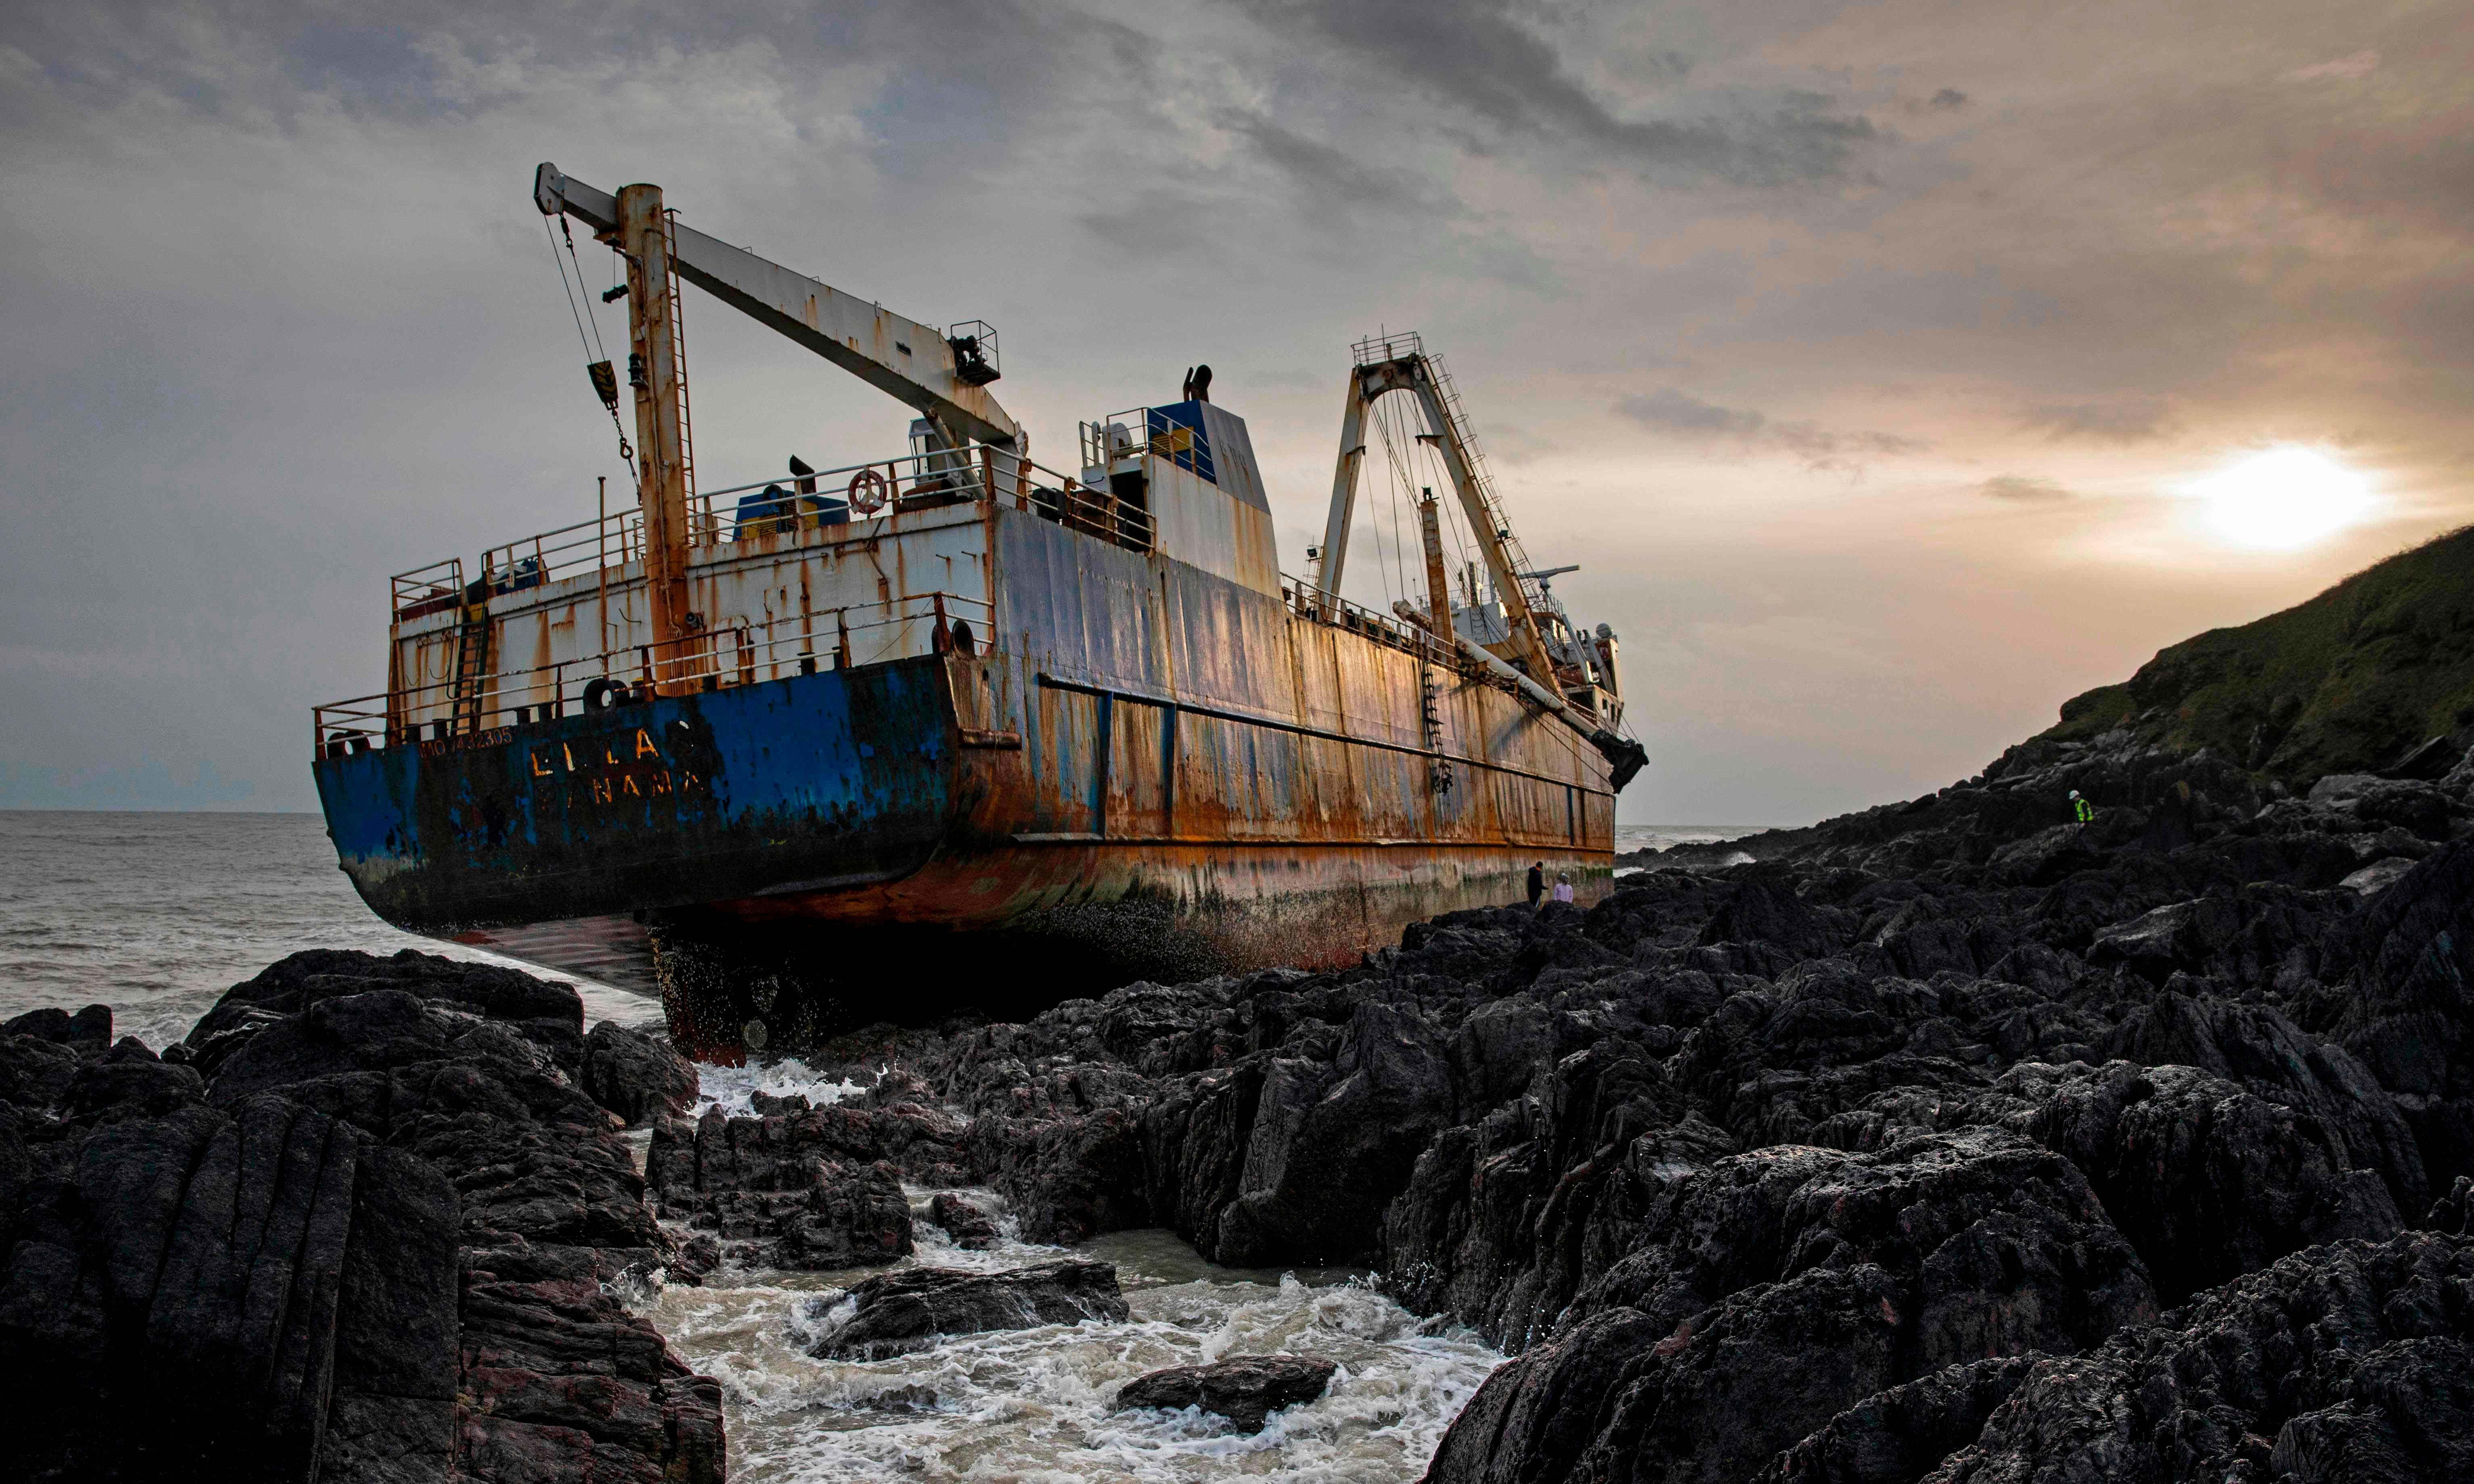 Irish contractors get first look at grounded 'ghost ship' MV Alta